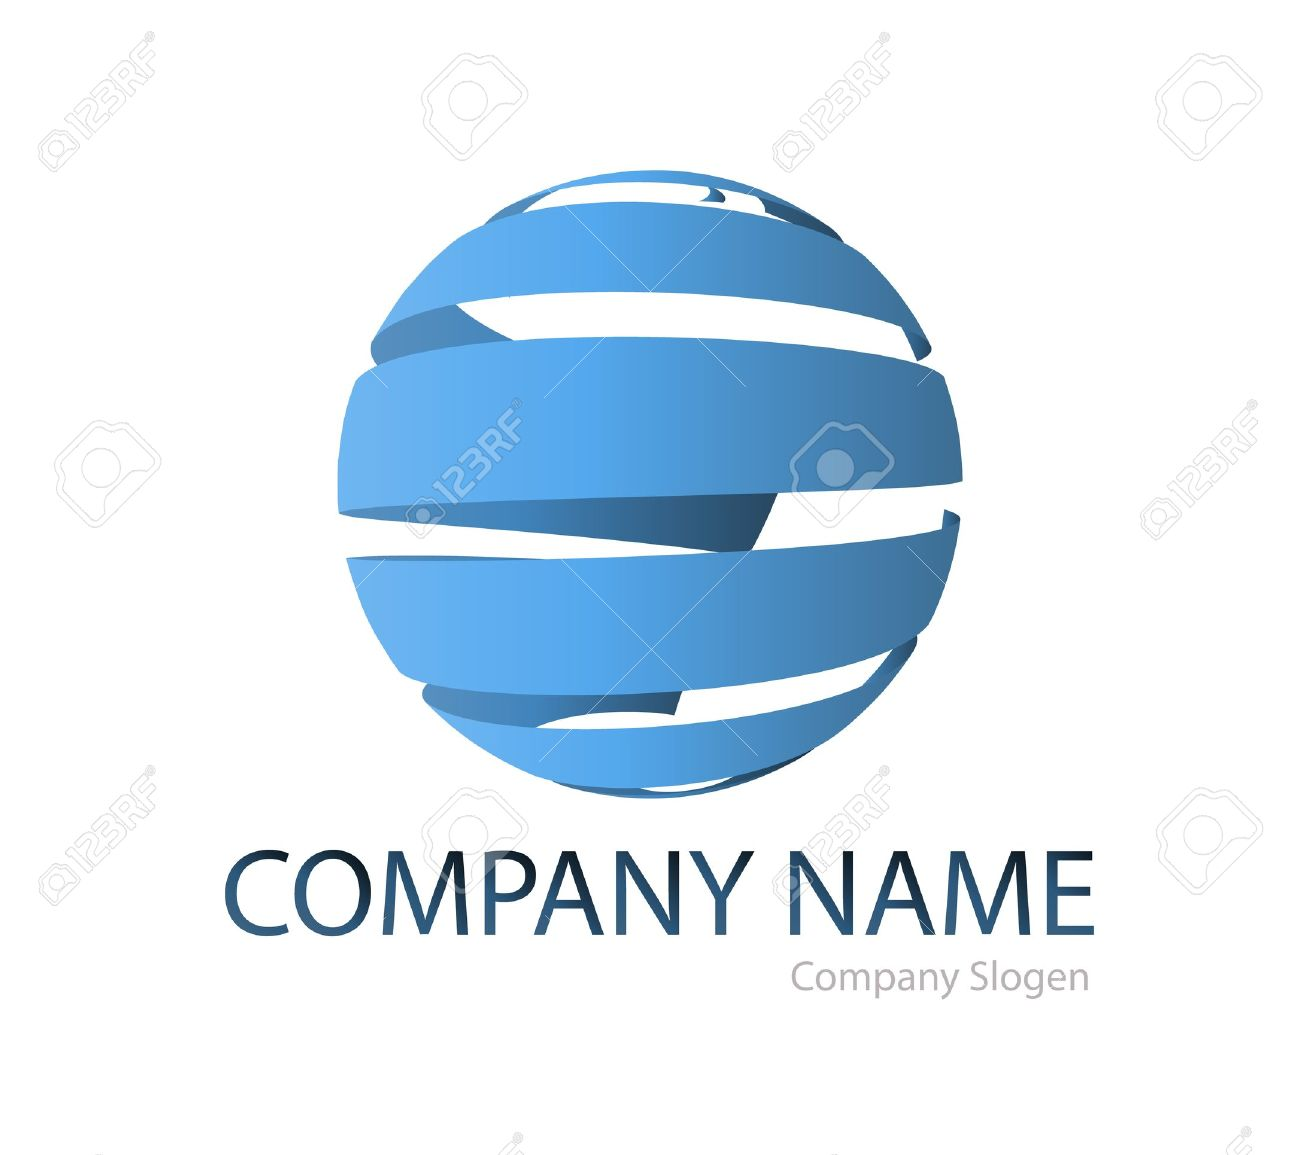 Business logo global graphic Stock Vector - 17575841